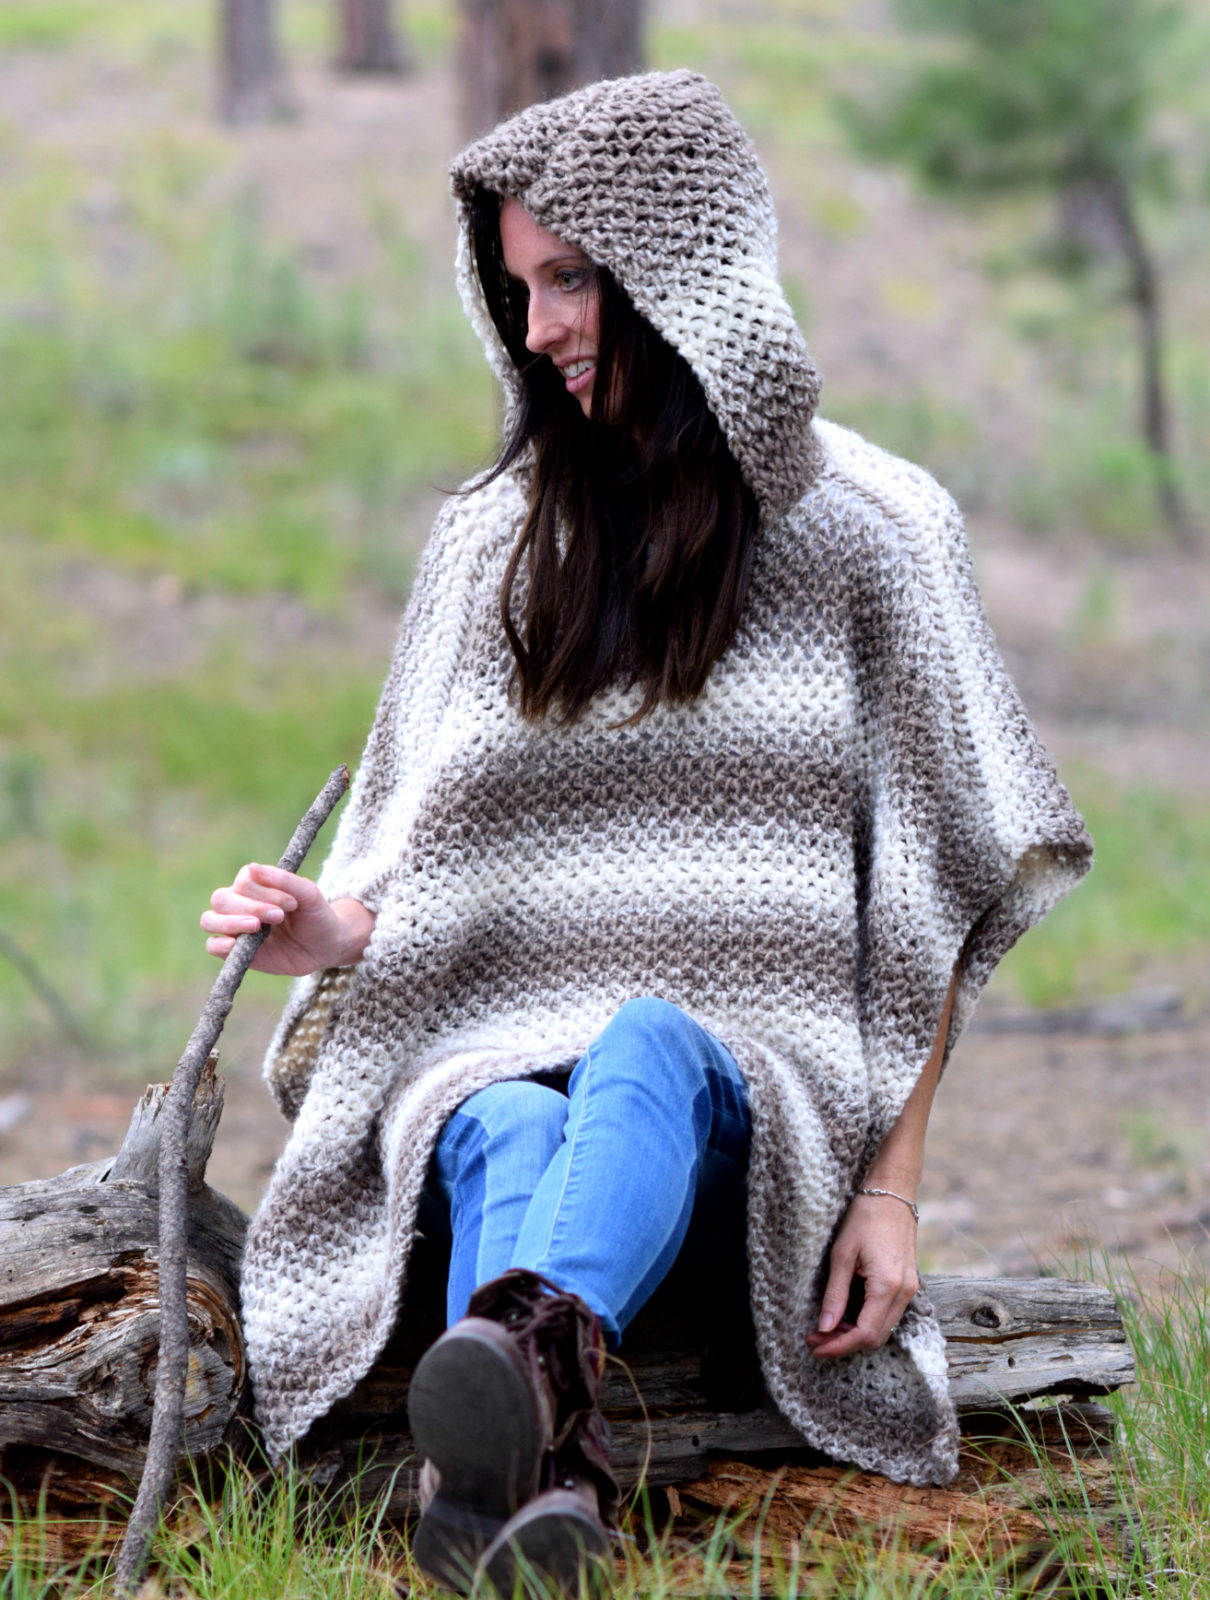 291060ef3626e Driftwood Oversized Crochet Hooded Poncho Pattern – Mama In A Stitch